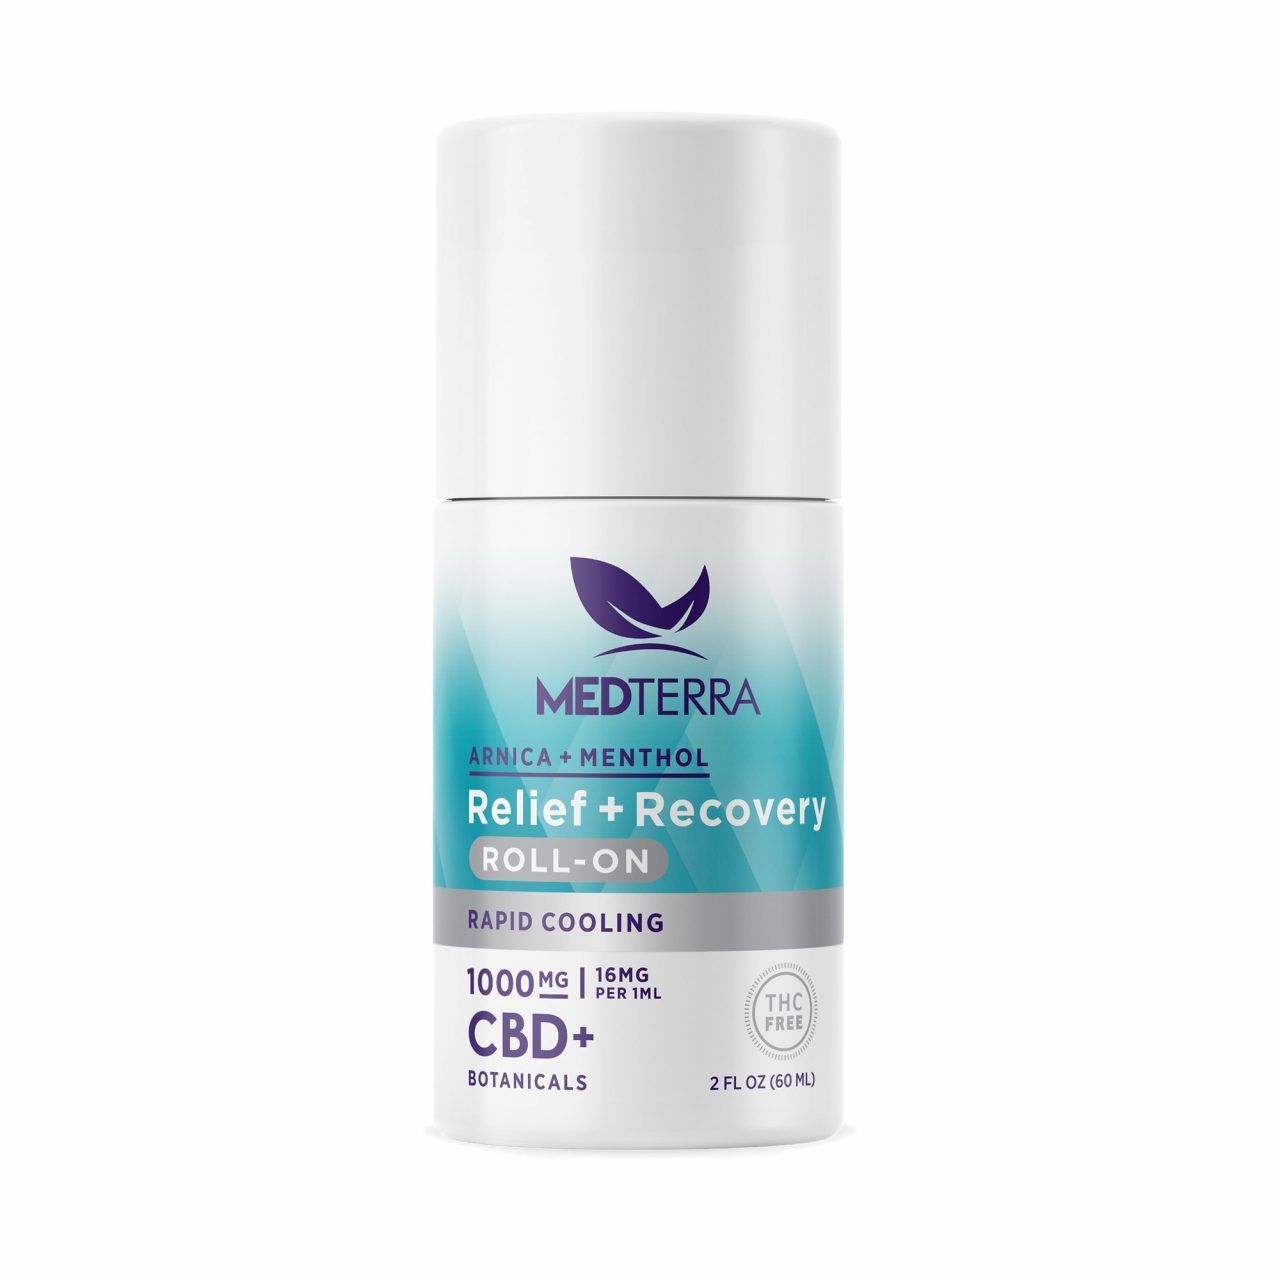 Medterra, Relief + Recovery CBD Roll On, Isolate THC-Free, 2oz, 1000mg CBD